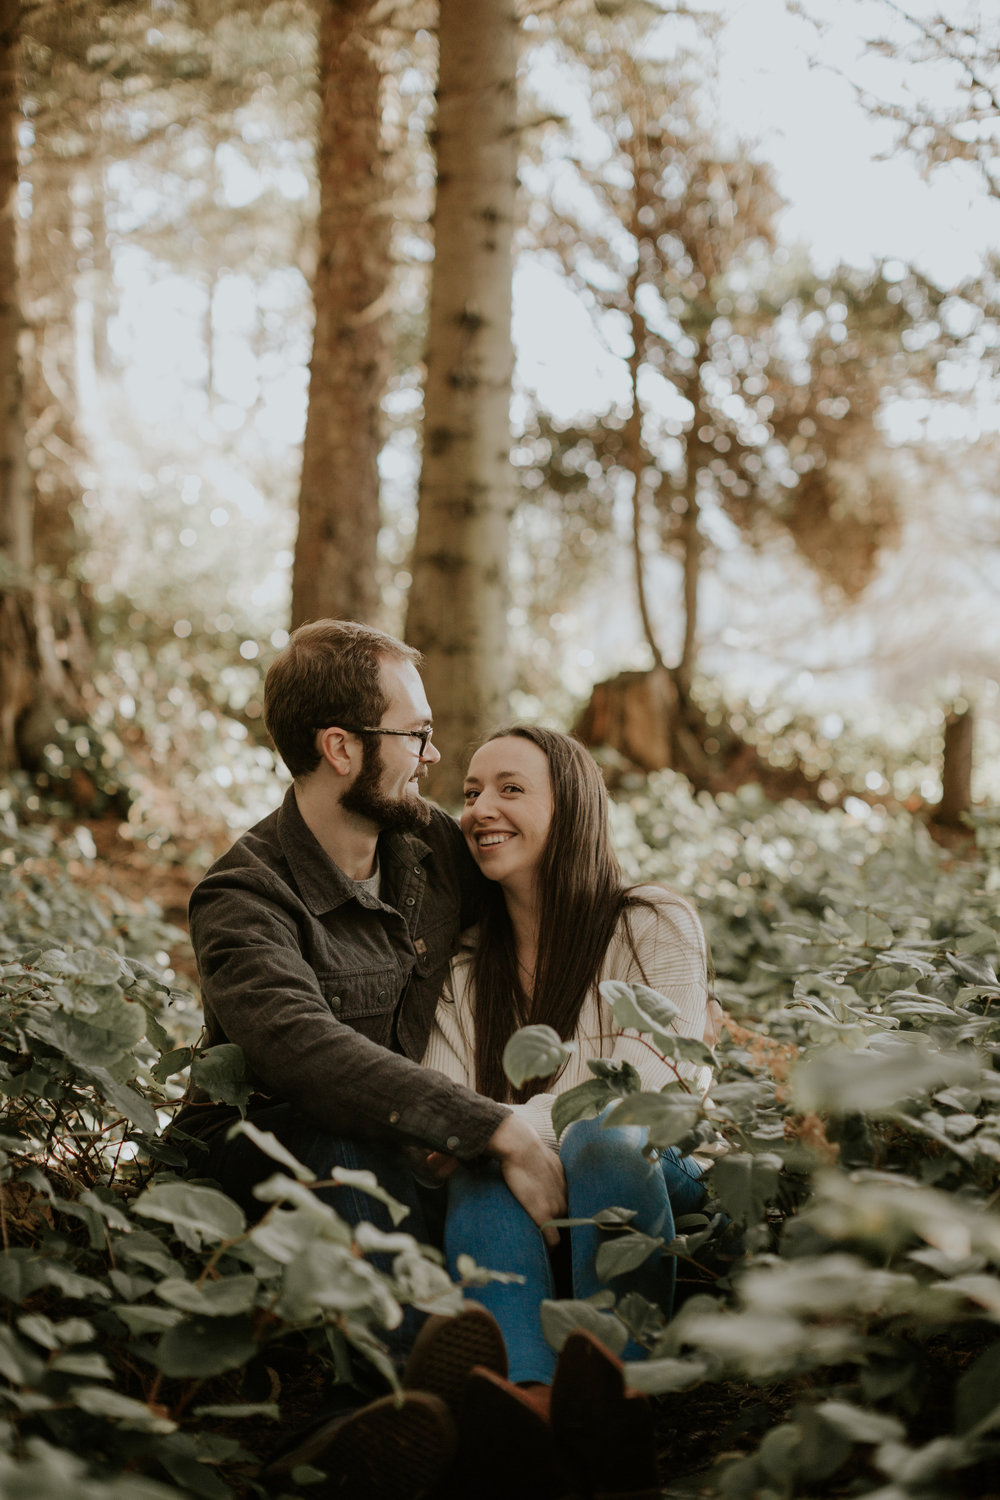 PNW-Olympic National Park-Salt Creek-engagement-Portrait-Port-Angeles-Washington-elopement-photographer-kayla-dawn-photography-kayladawnphoto-wedding-anniversary-photoshoot-olympic-peninsula-101.jpg